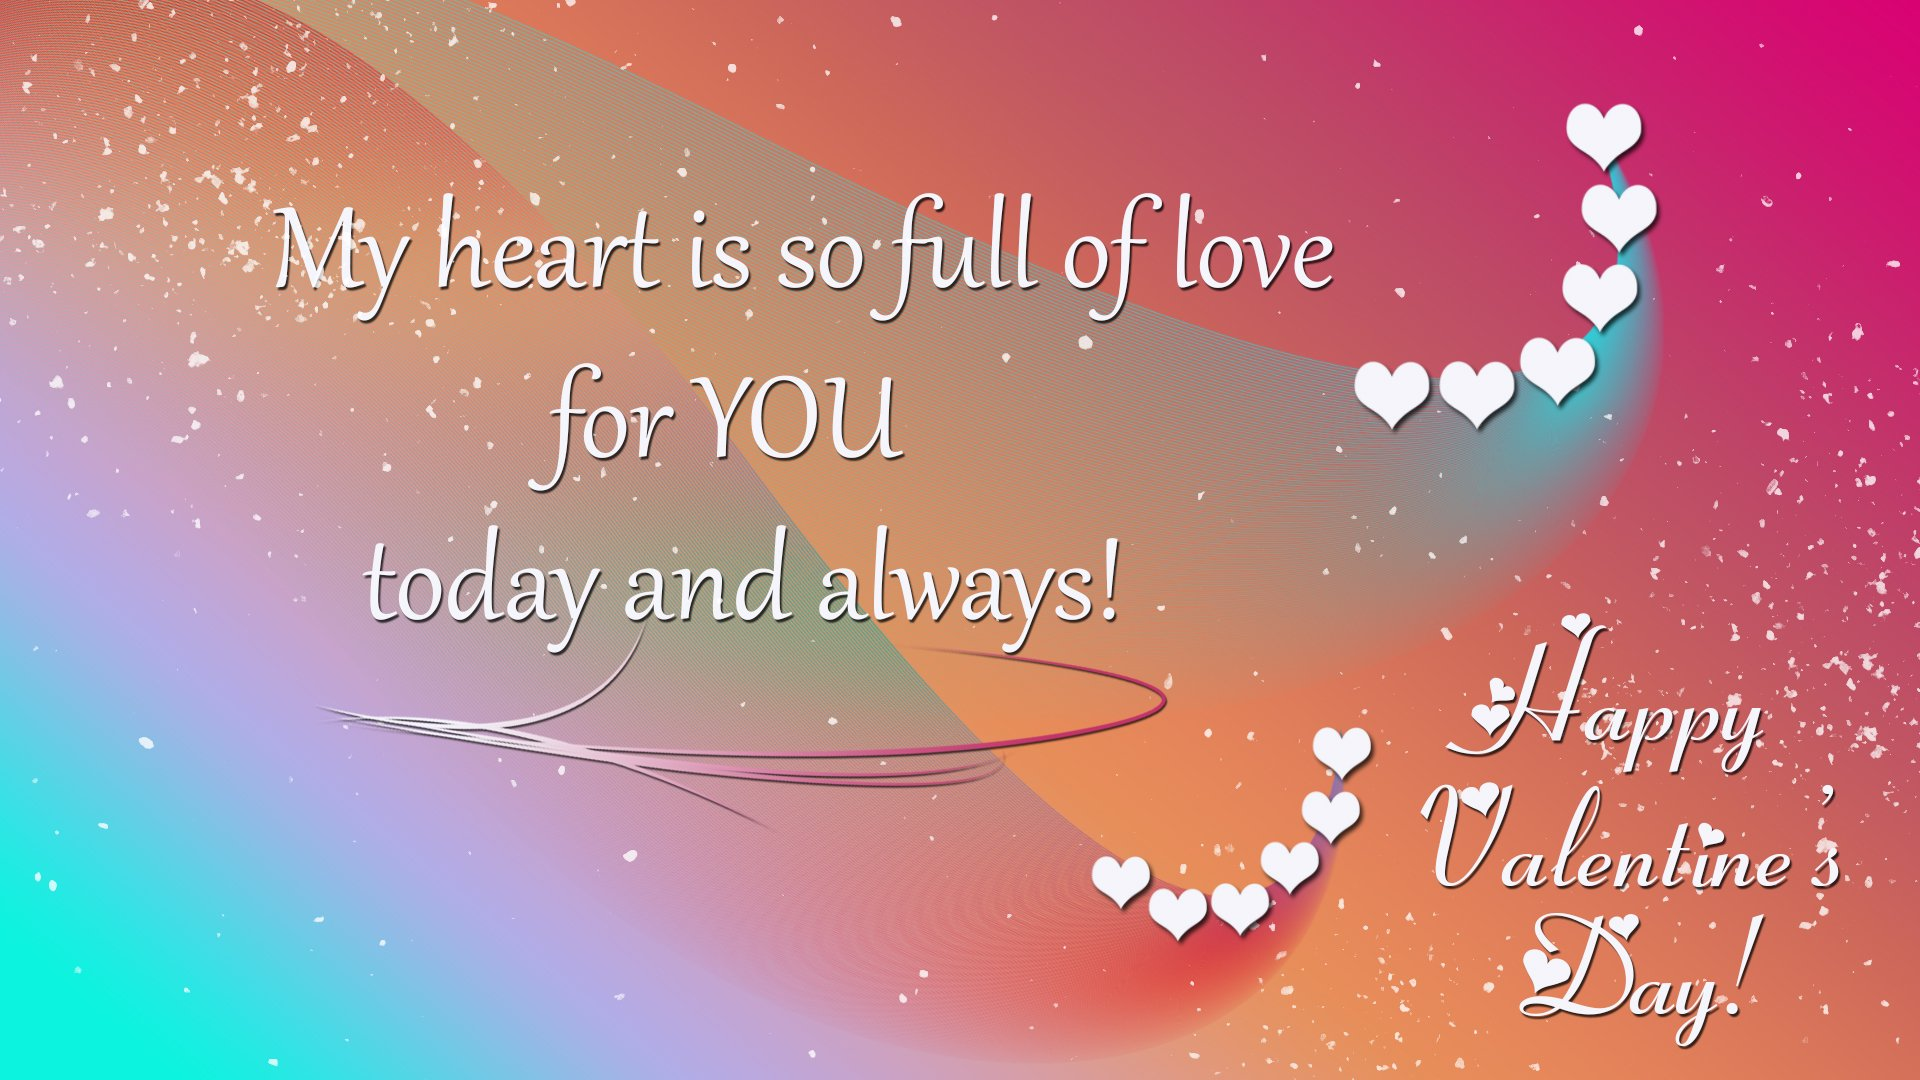 I Love you Images Pictures and Quotes for Him and